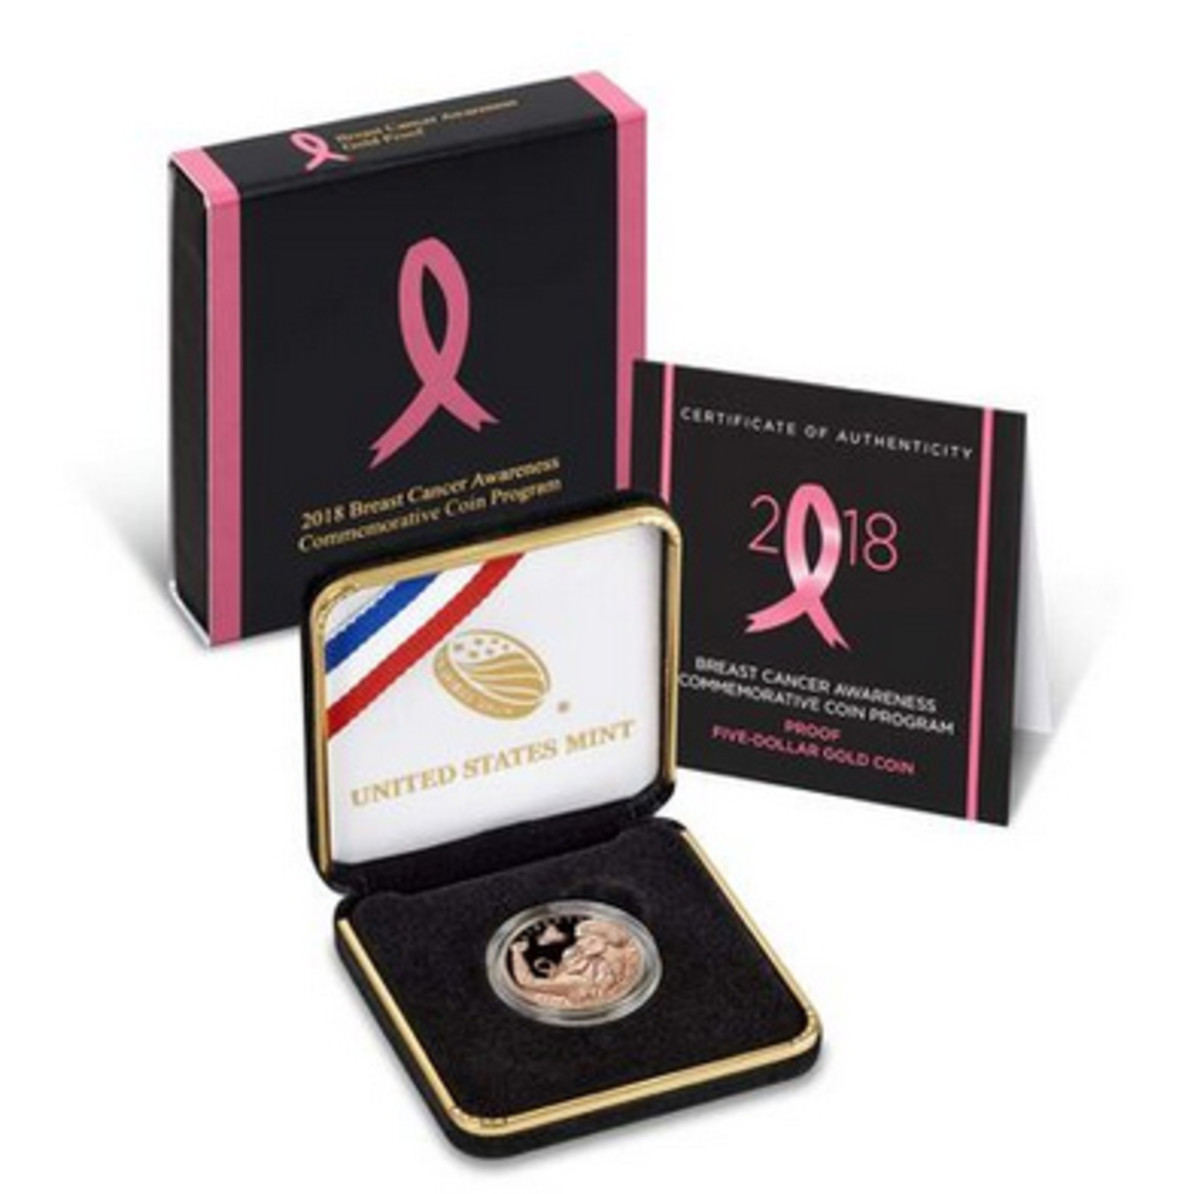 The Breast Cancer Awareness pink gold $5 commemorative coin went on sale March 15, with a $35 surcharge benefitting the Breast Cancer Research Foundation.